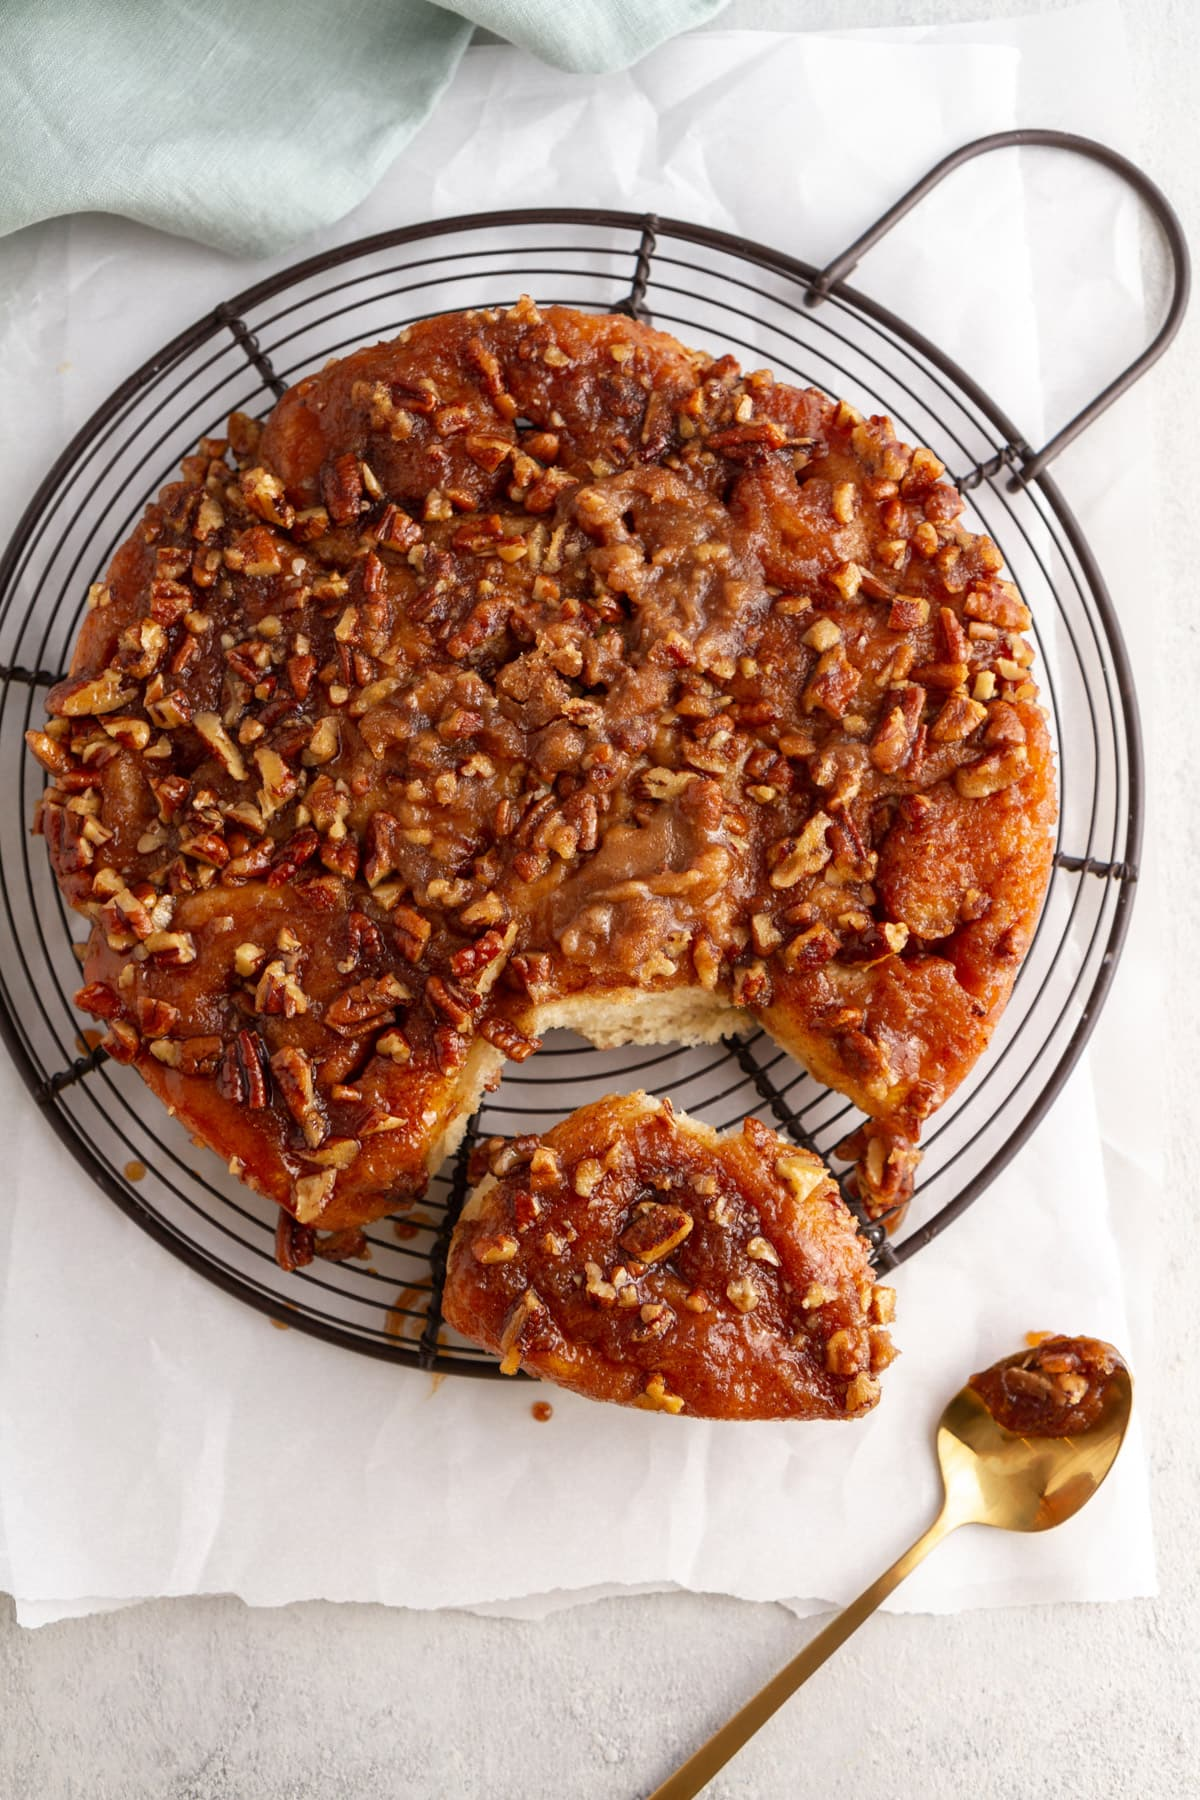 Overnight Caramel Pecan Sticky Buns -- This fresh, fluffy, gooey, easy sticky buns recipe can be made ahead or right away: whenever you need a sweet breakfast treat! @girlversusdough #girlversusdough #breakfastrecipe #sweetrolls #caramelrolls